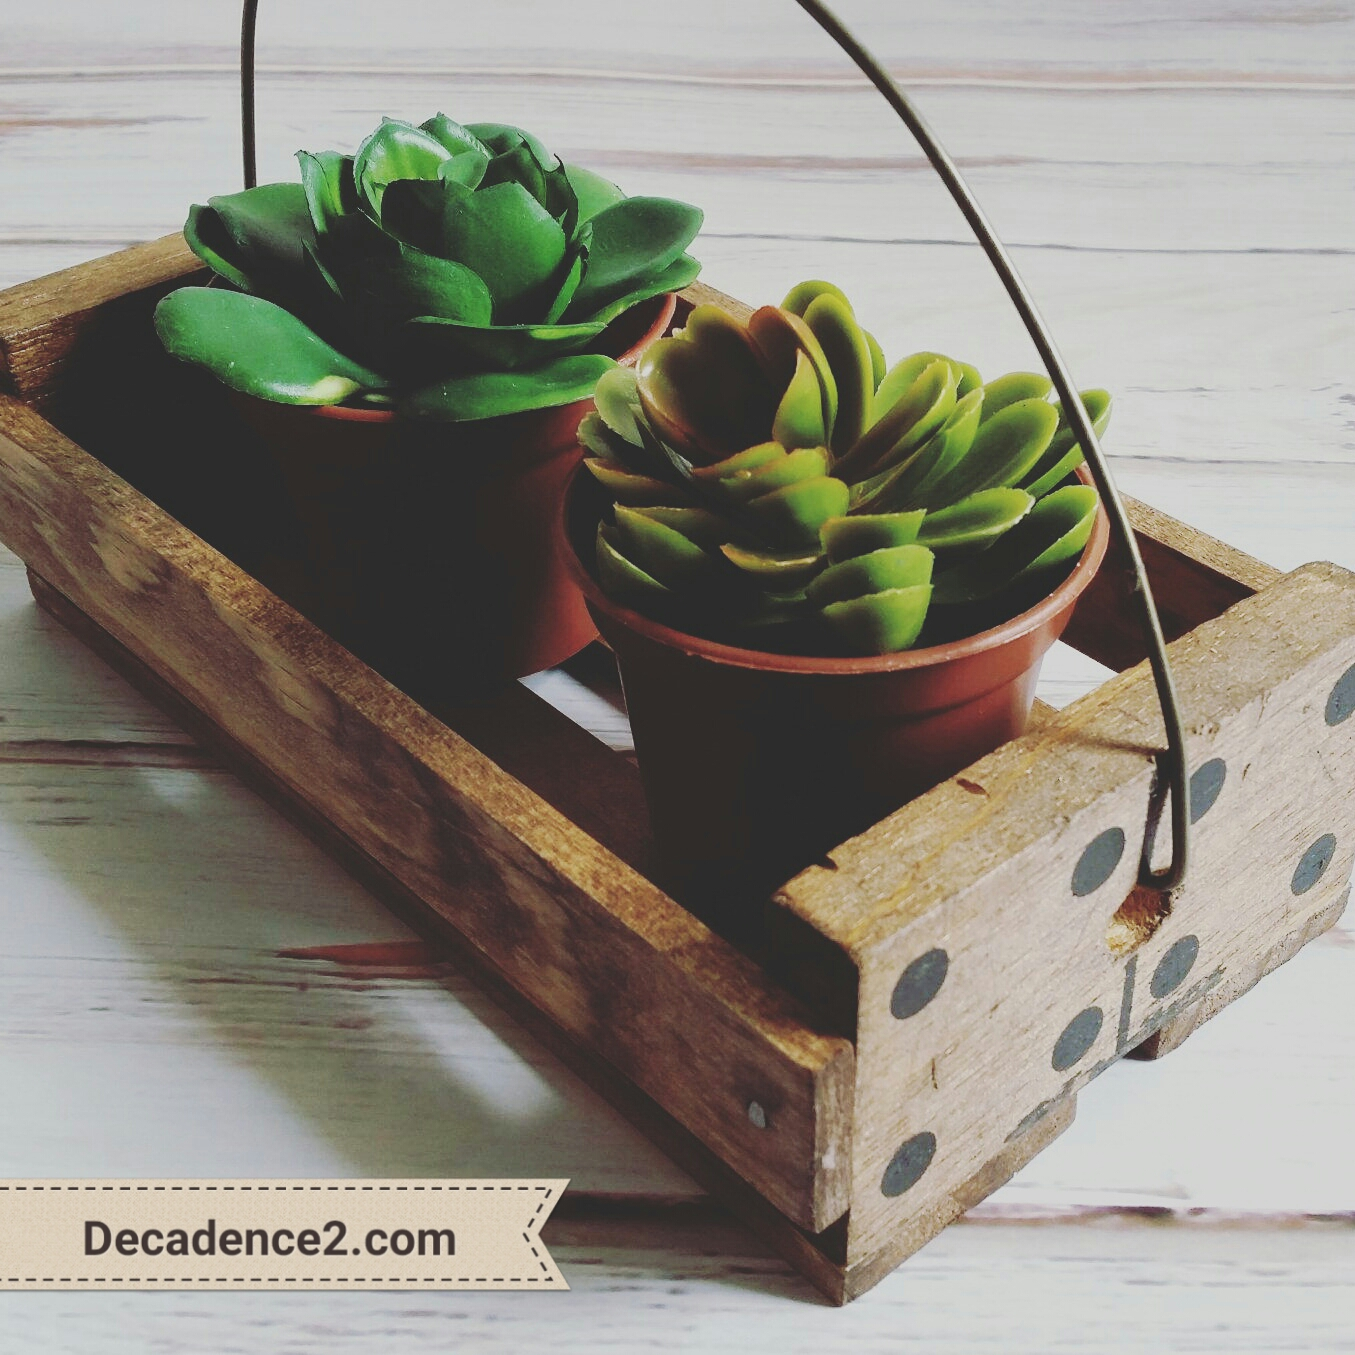 domino crate succulents decadence2dotcom